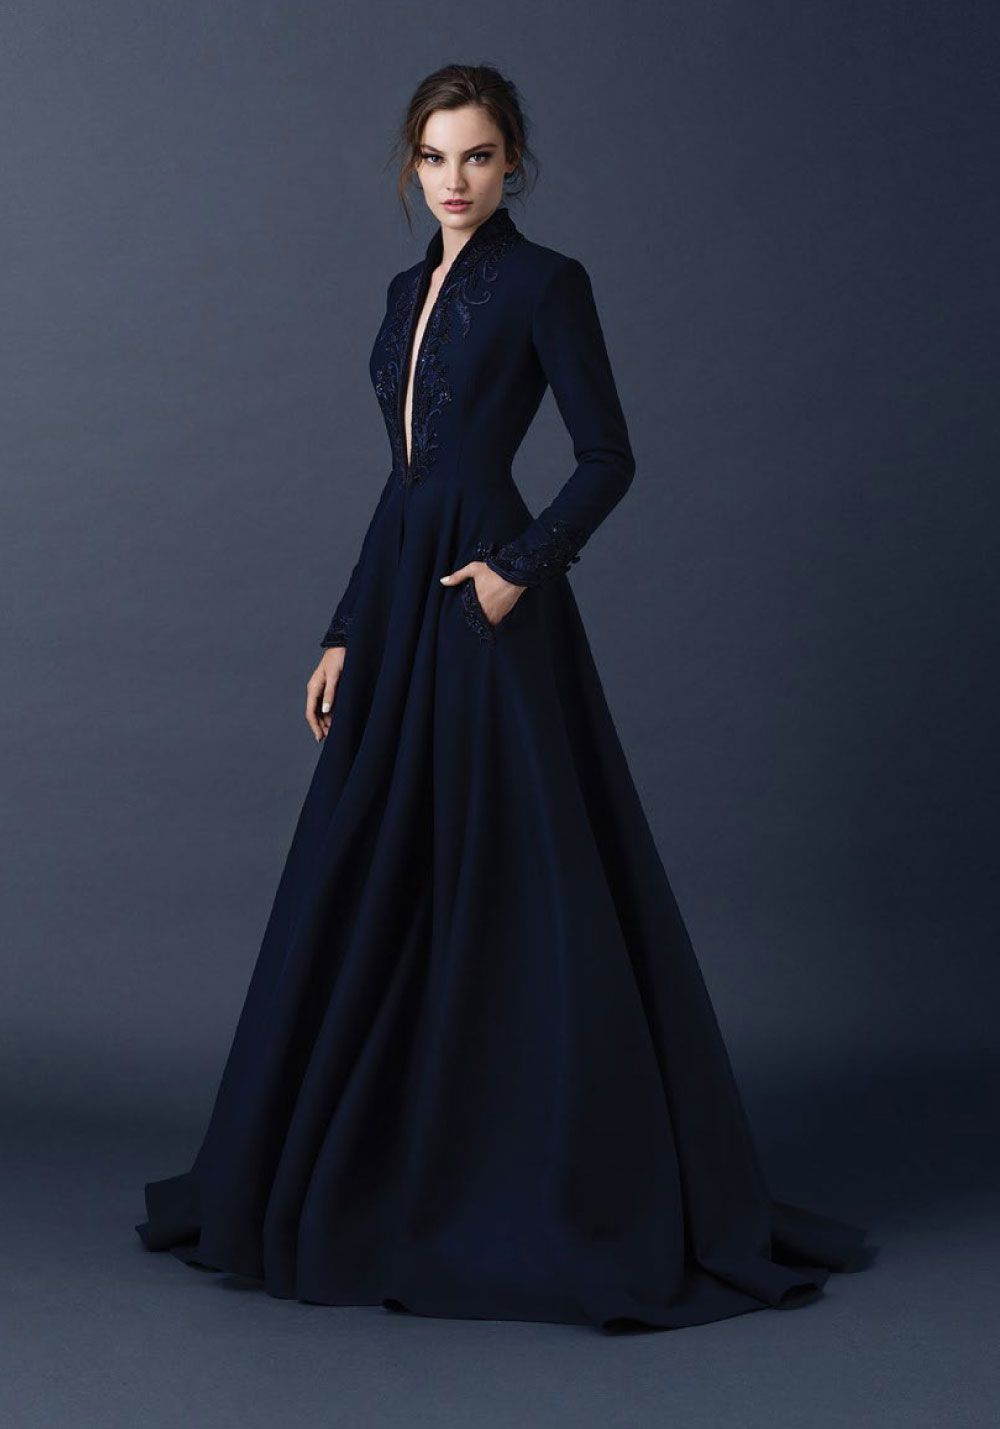 aw couture paolo sebastian theres just something about it